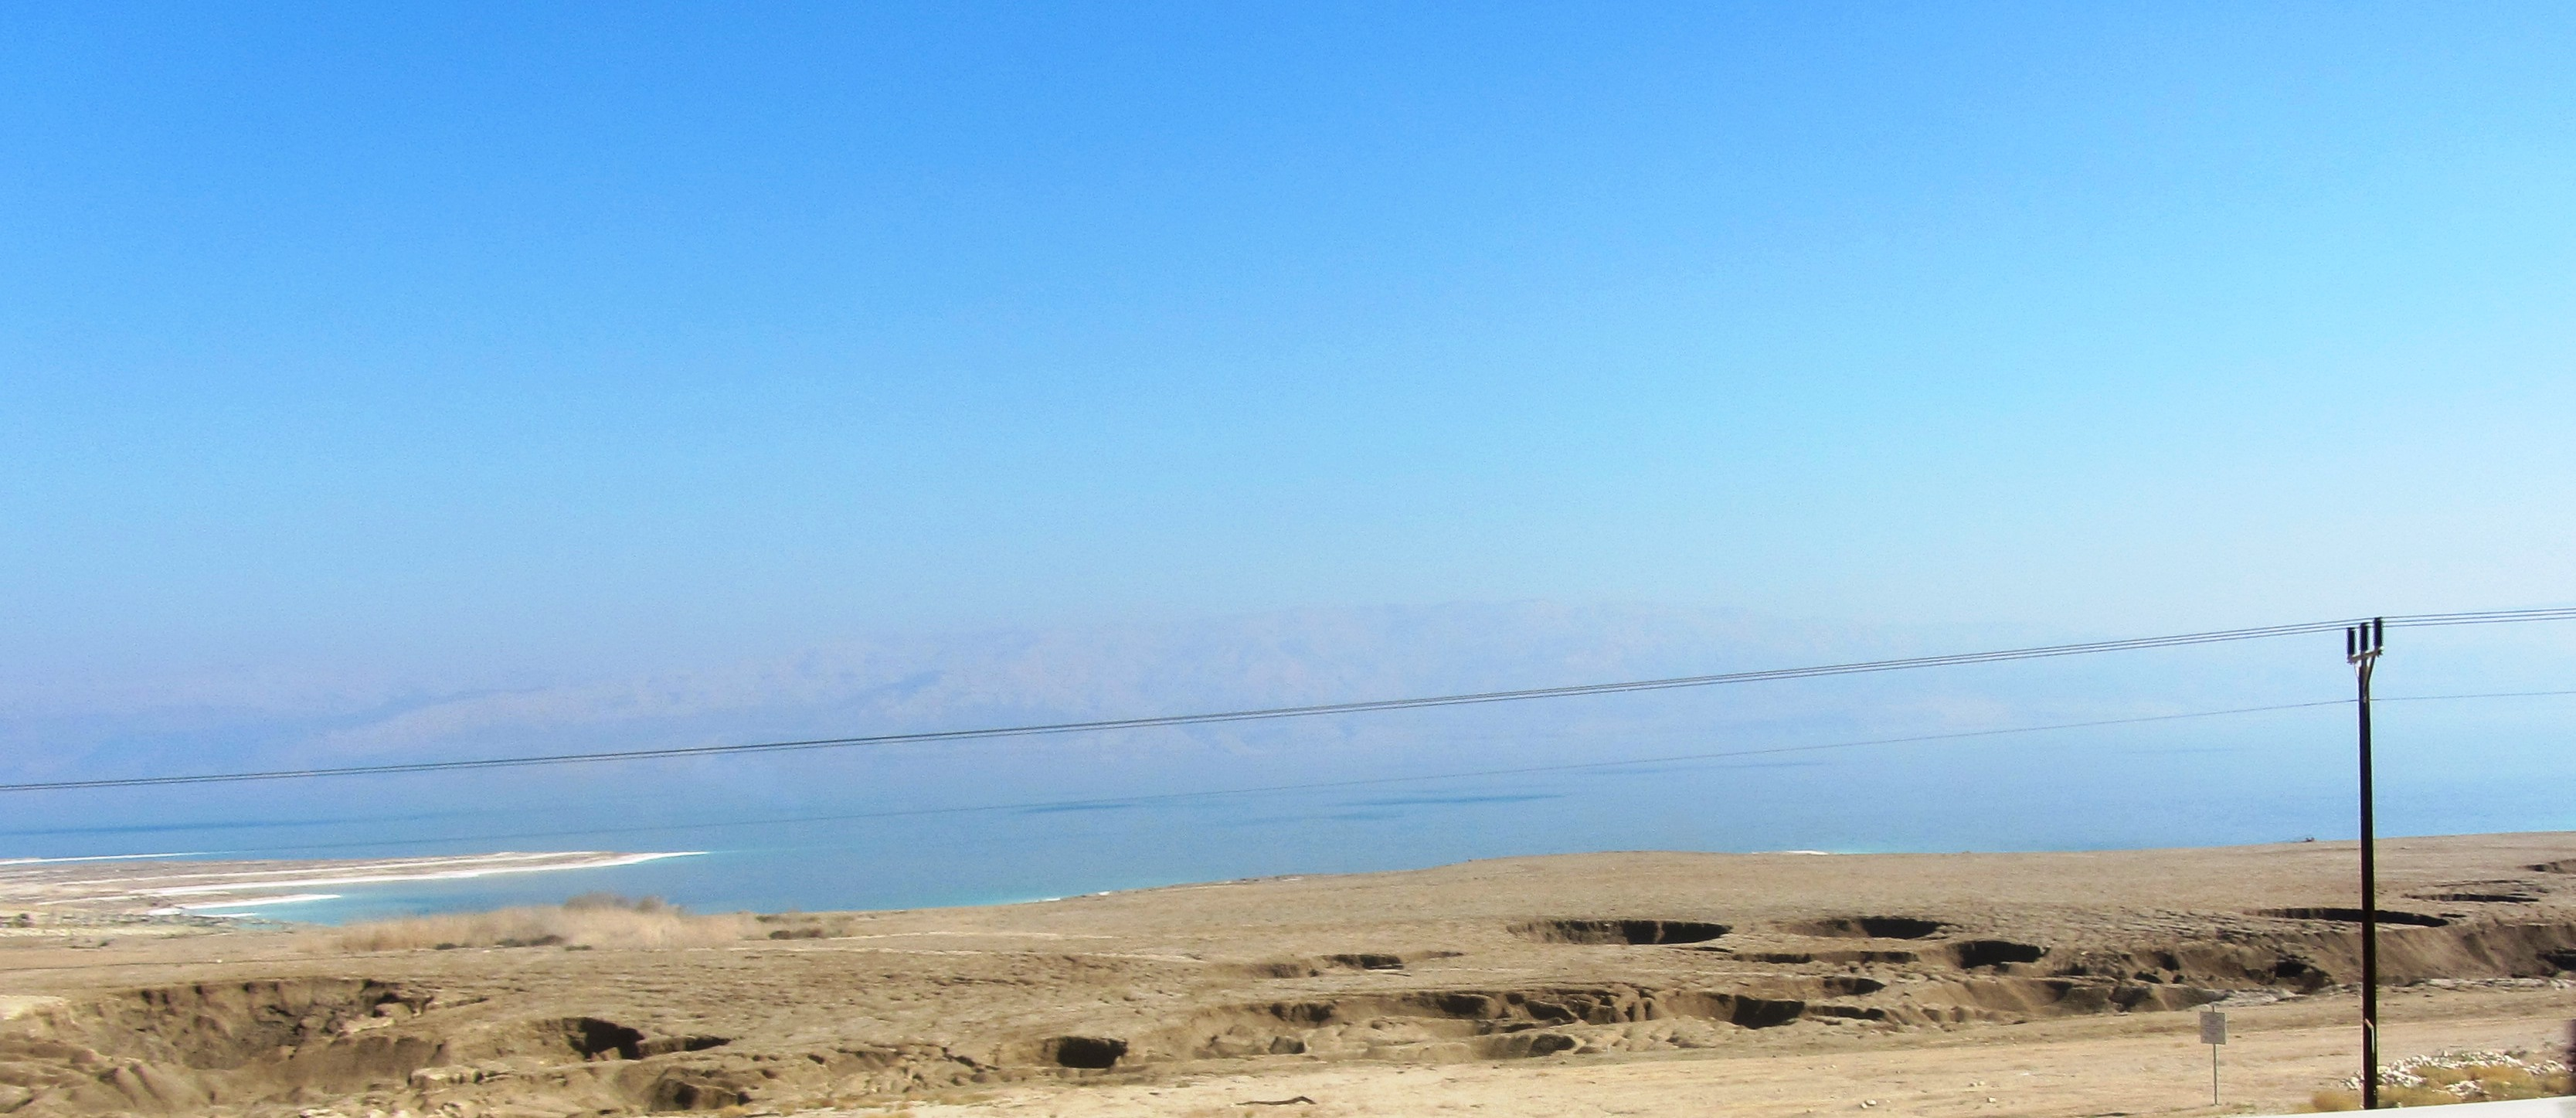 Sink holes near Dead Sea